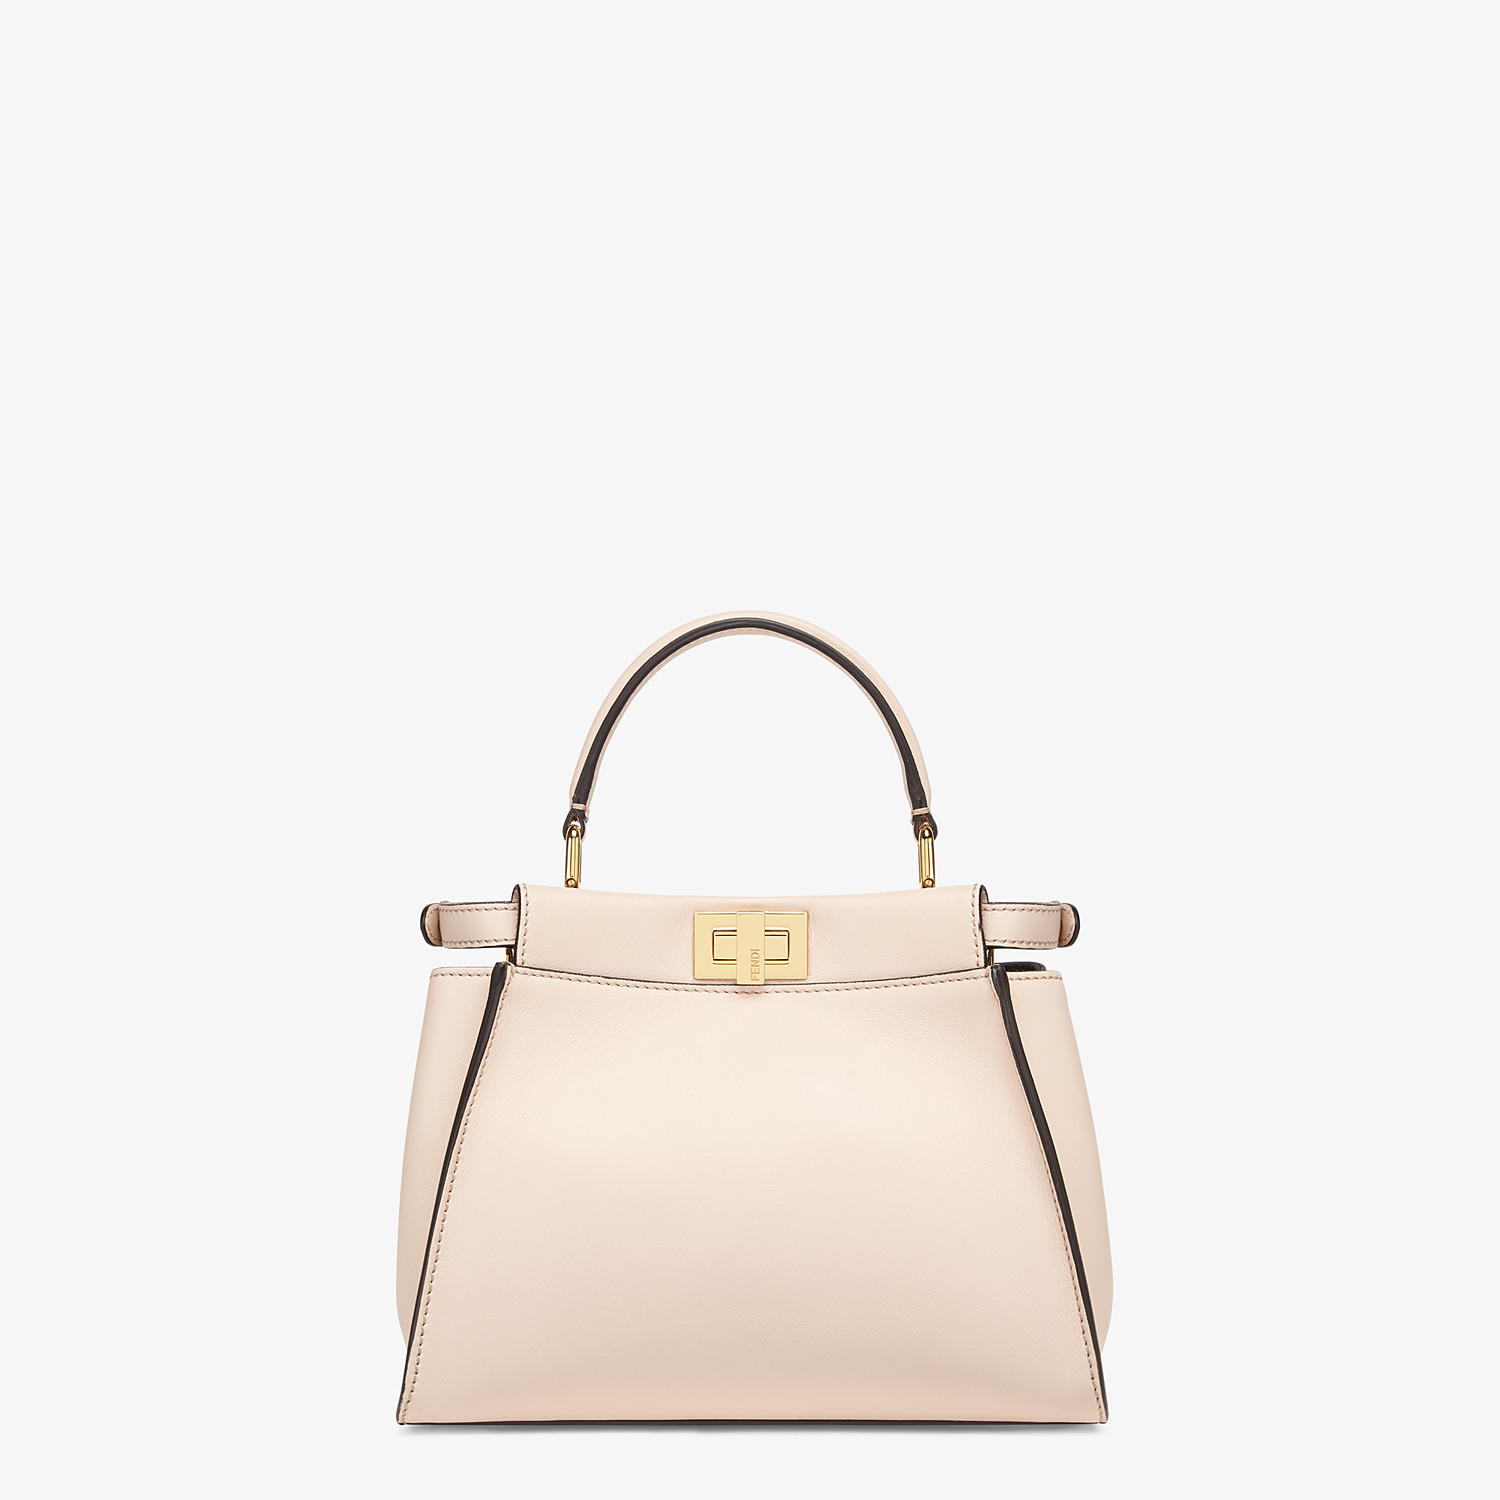 FENDI PEEKABOO ICONIC MINI - Pink leather bag - view 4 detail